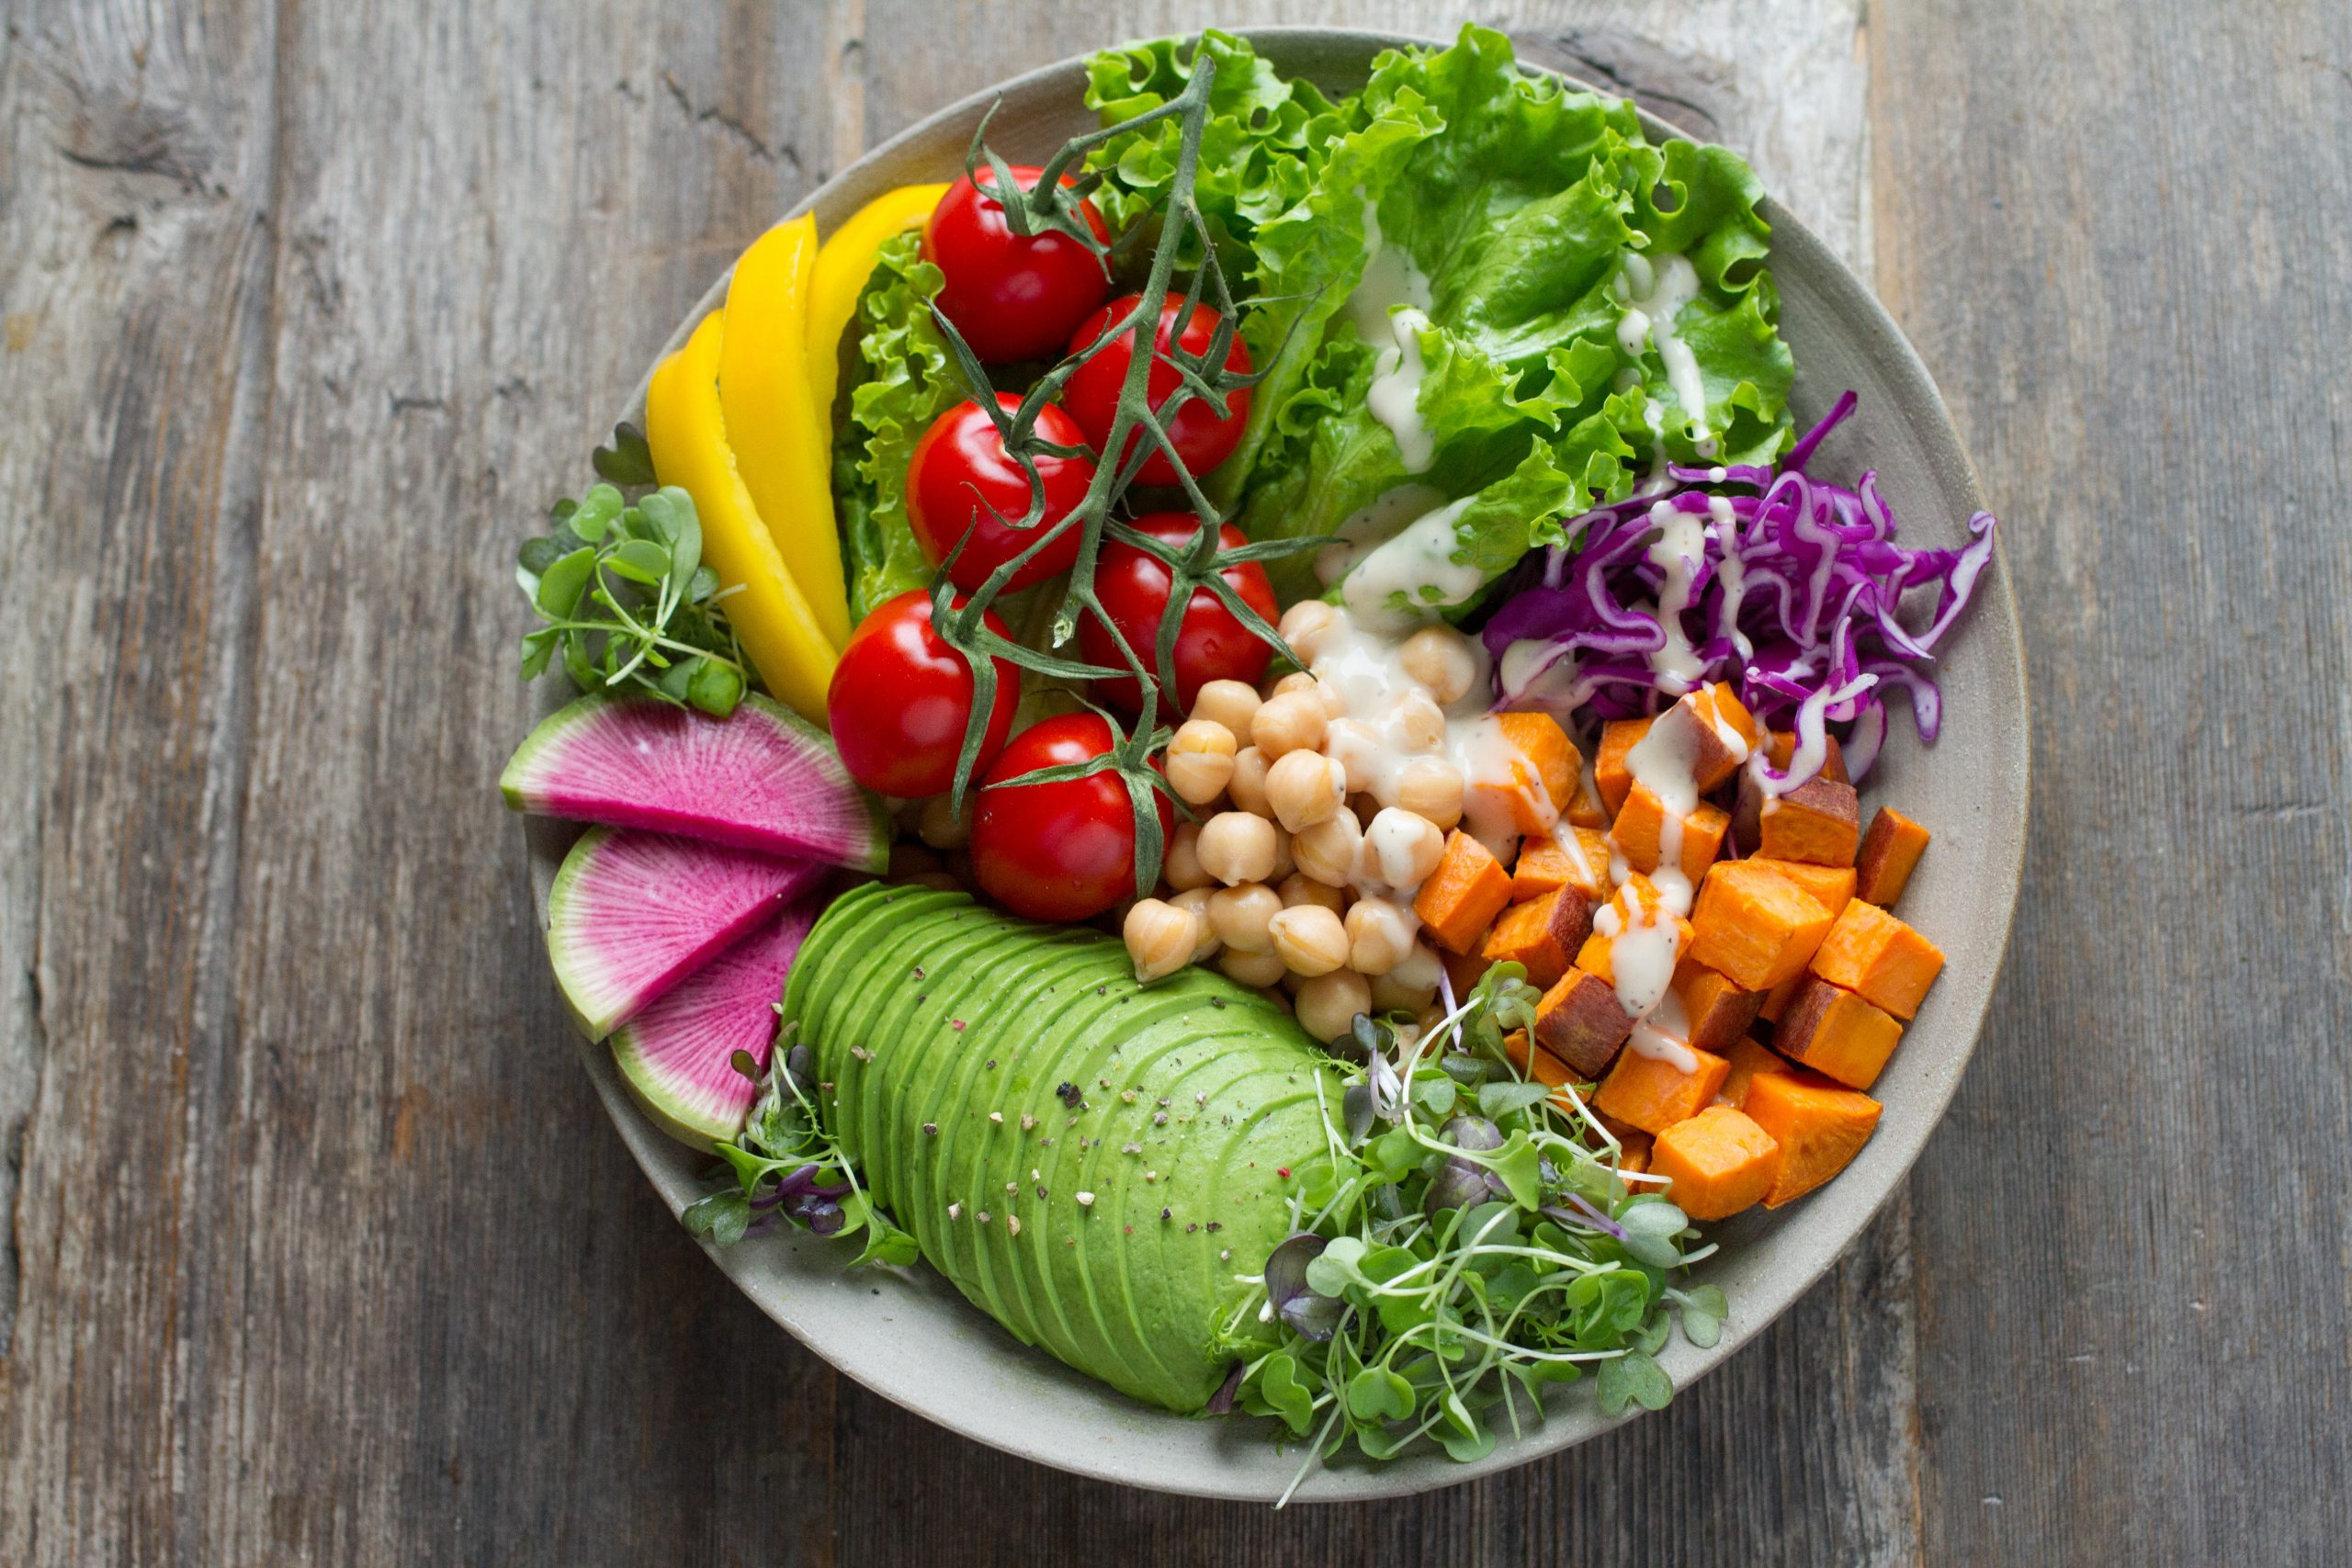 Healthy salad which is in affordable price